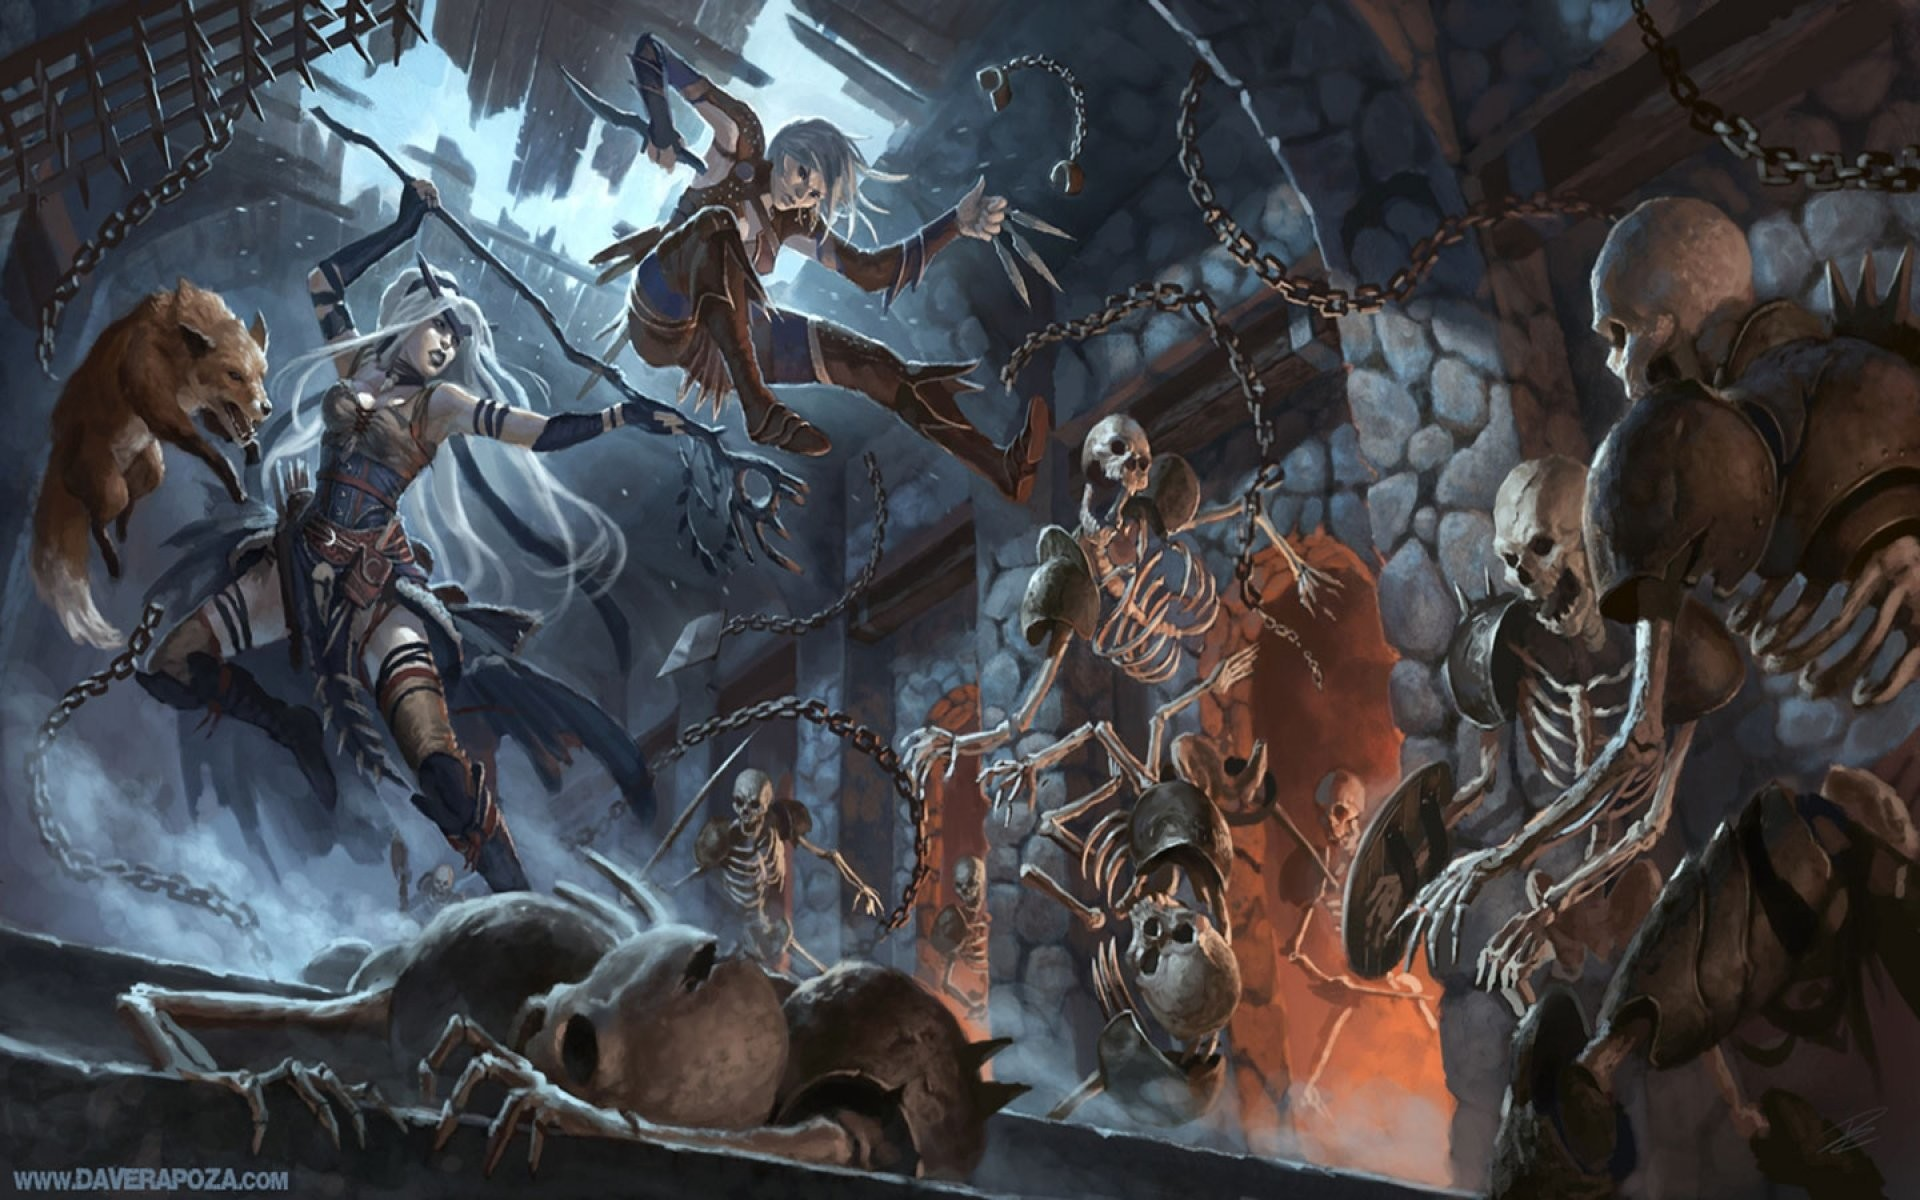 DUNGEONS-AND-DRAGONS fantasy adventure board rpg dungeons dragons (55)  wallpaper | | 388785 | WallpaperUP